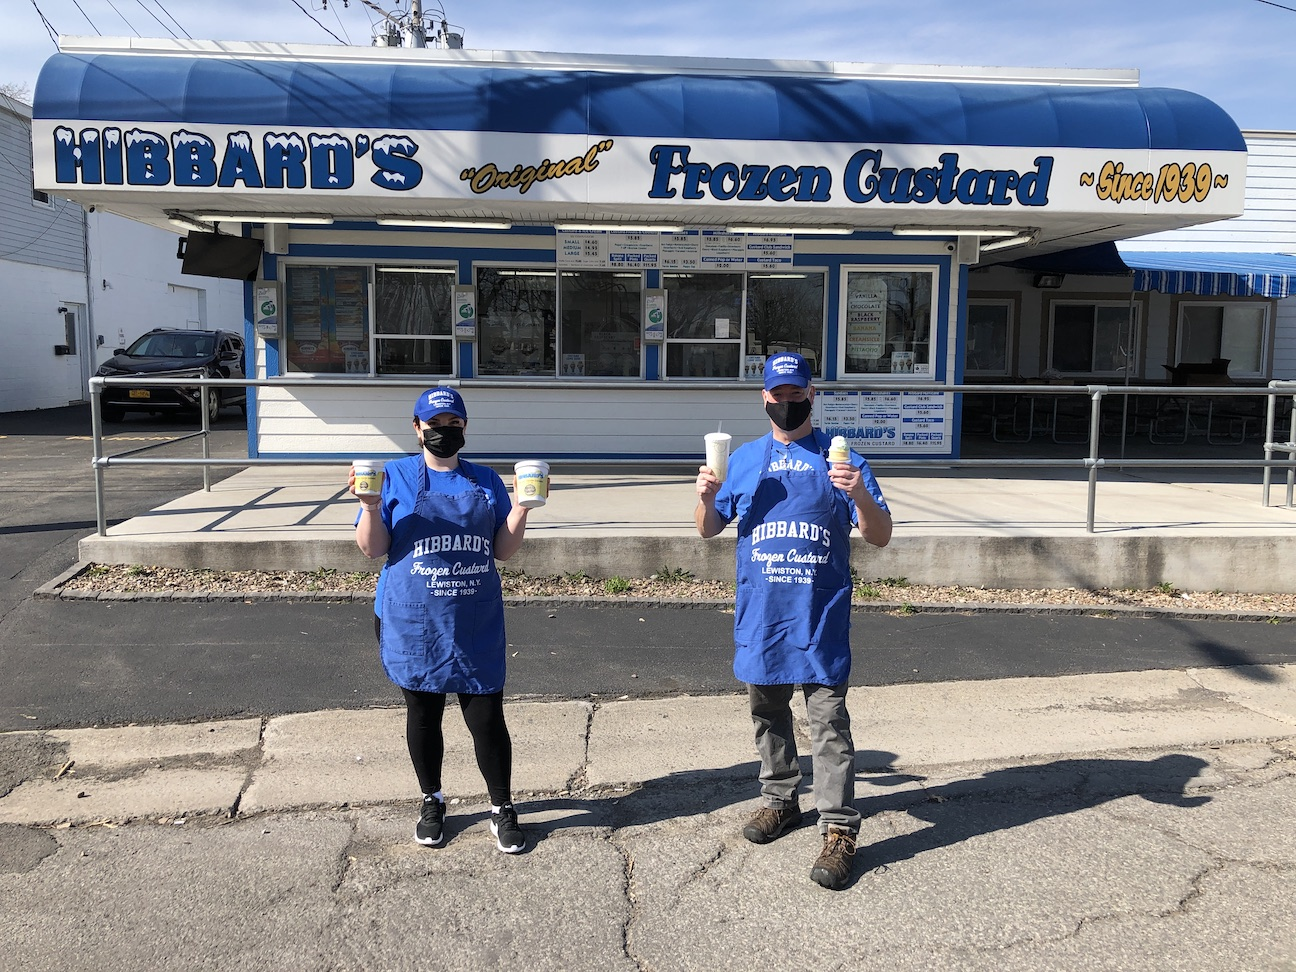 Pictured opening day at Hibbard's Original Frozen Custard are servers Ariane Nichols and Dan Buchner.